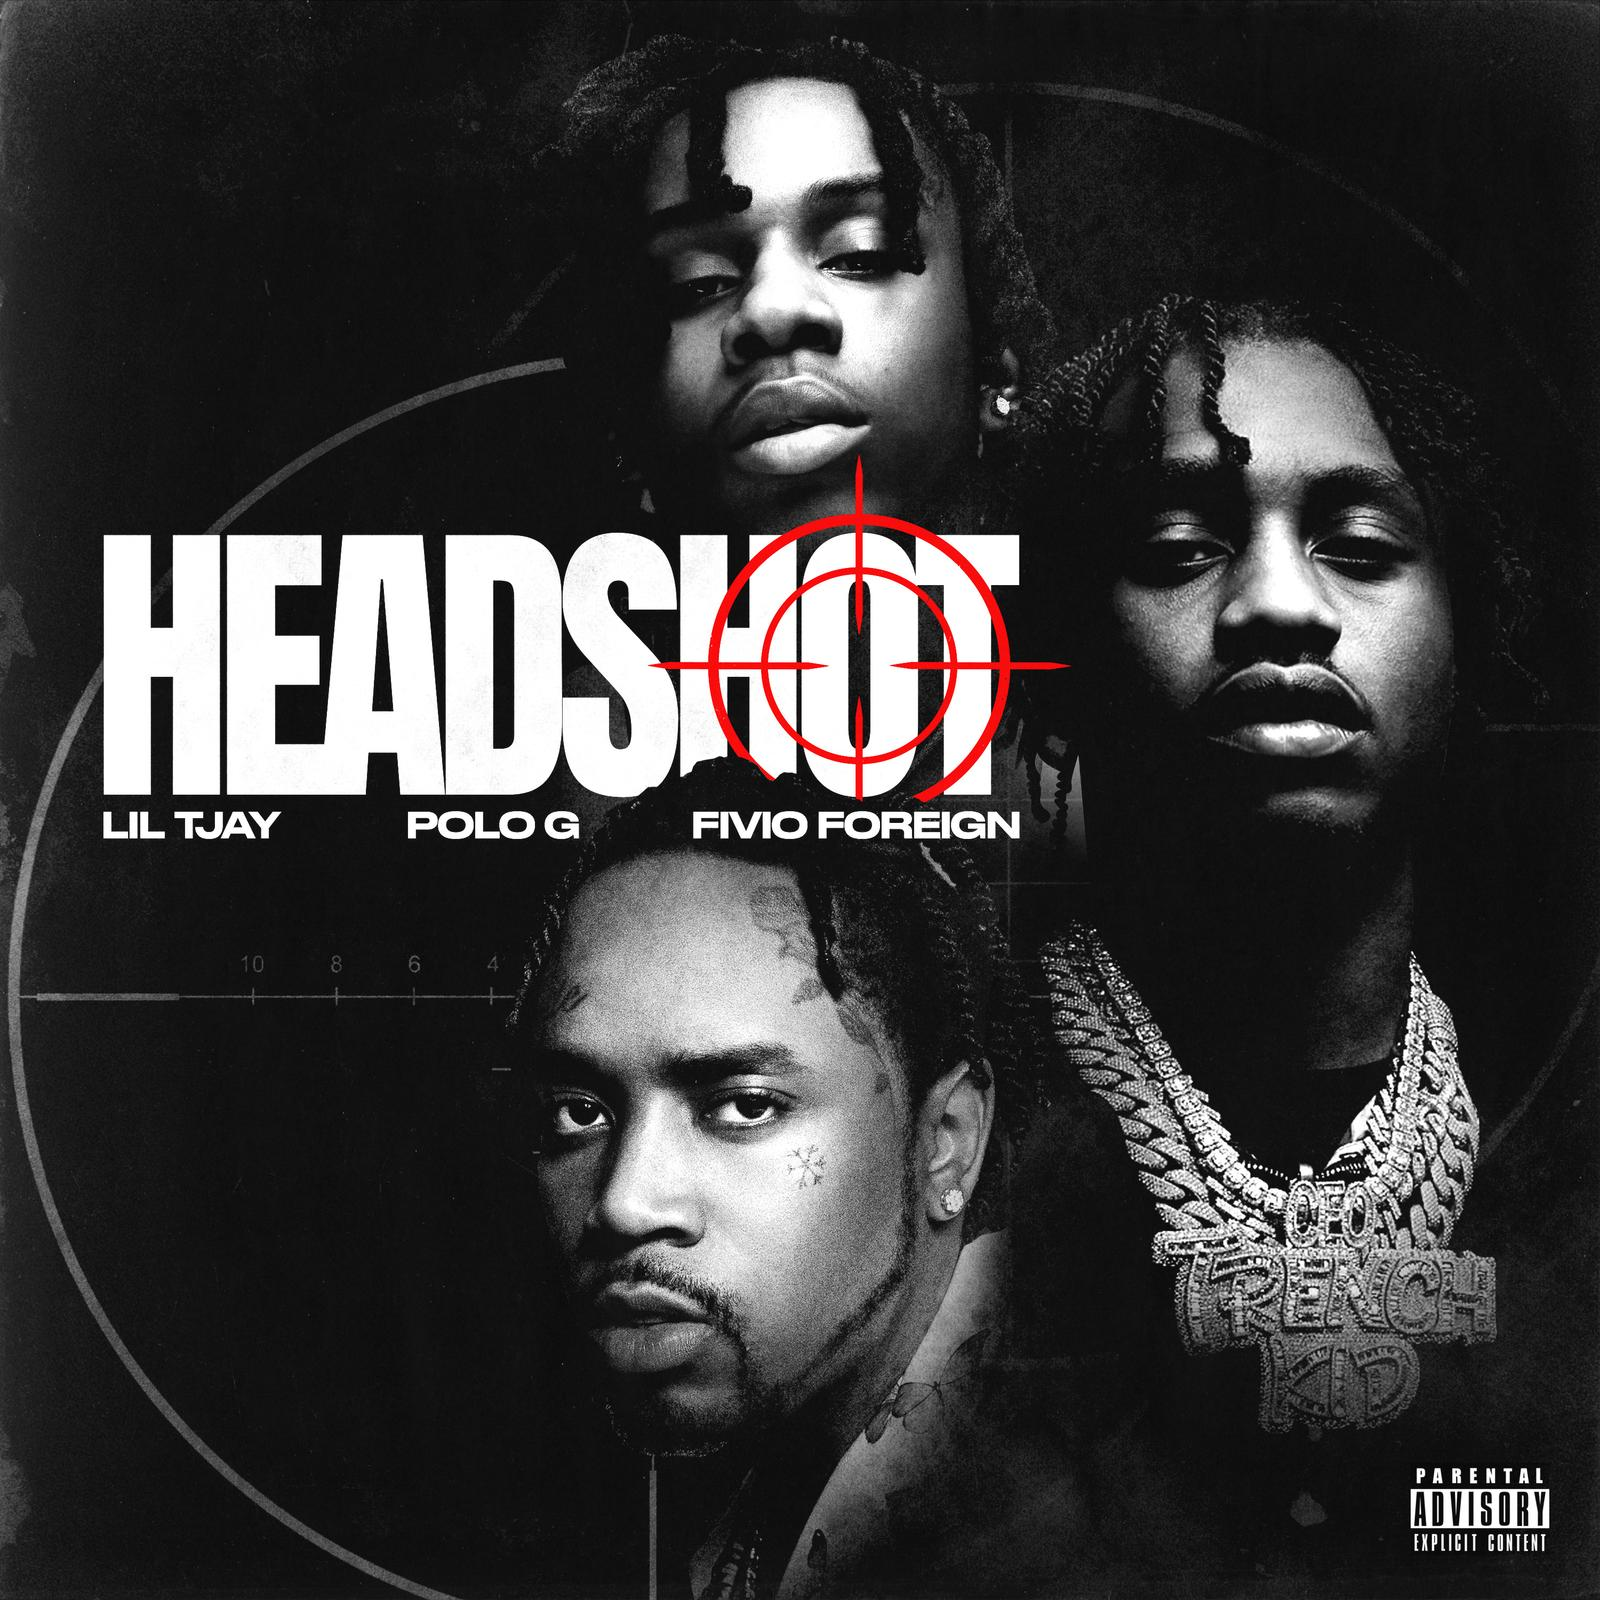 Art for Headshot (Dirty) by Lil Tjay, Polo G & Fivio Foreign